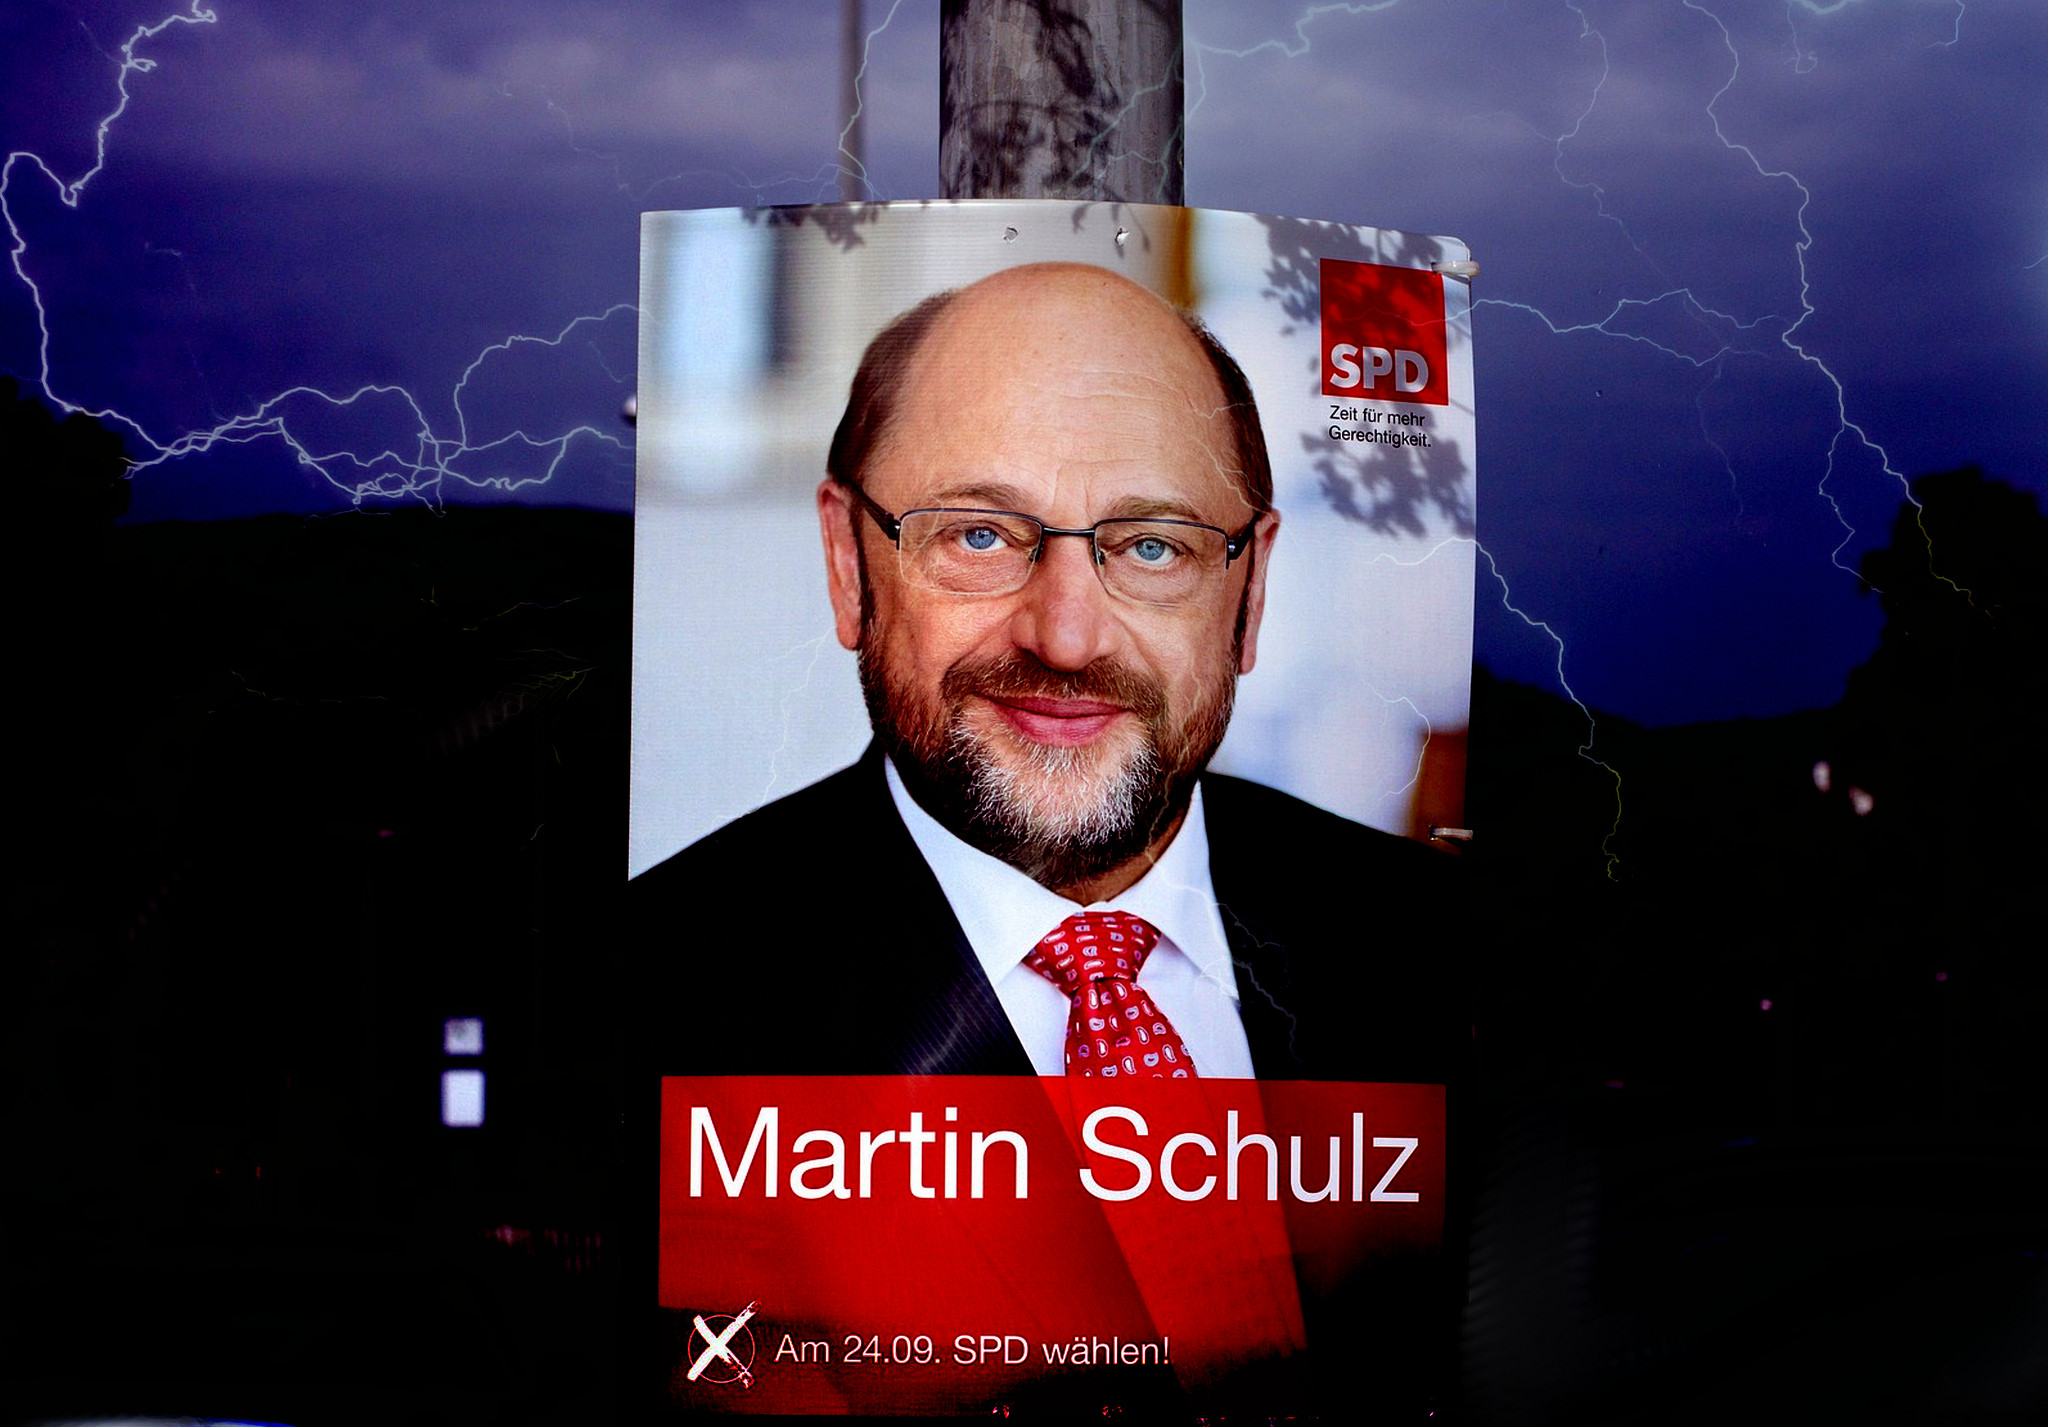 Martin Schulz is the first victim of Brexit